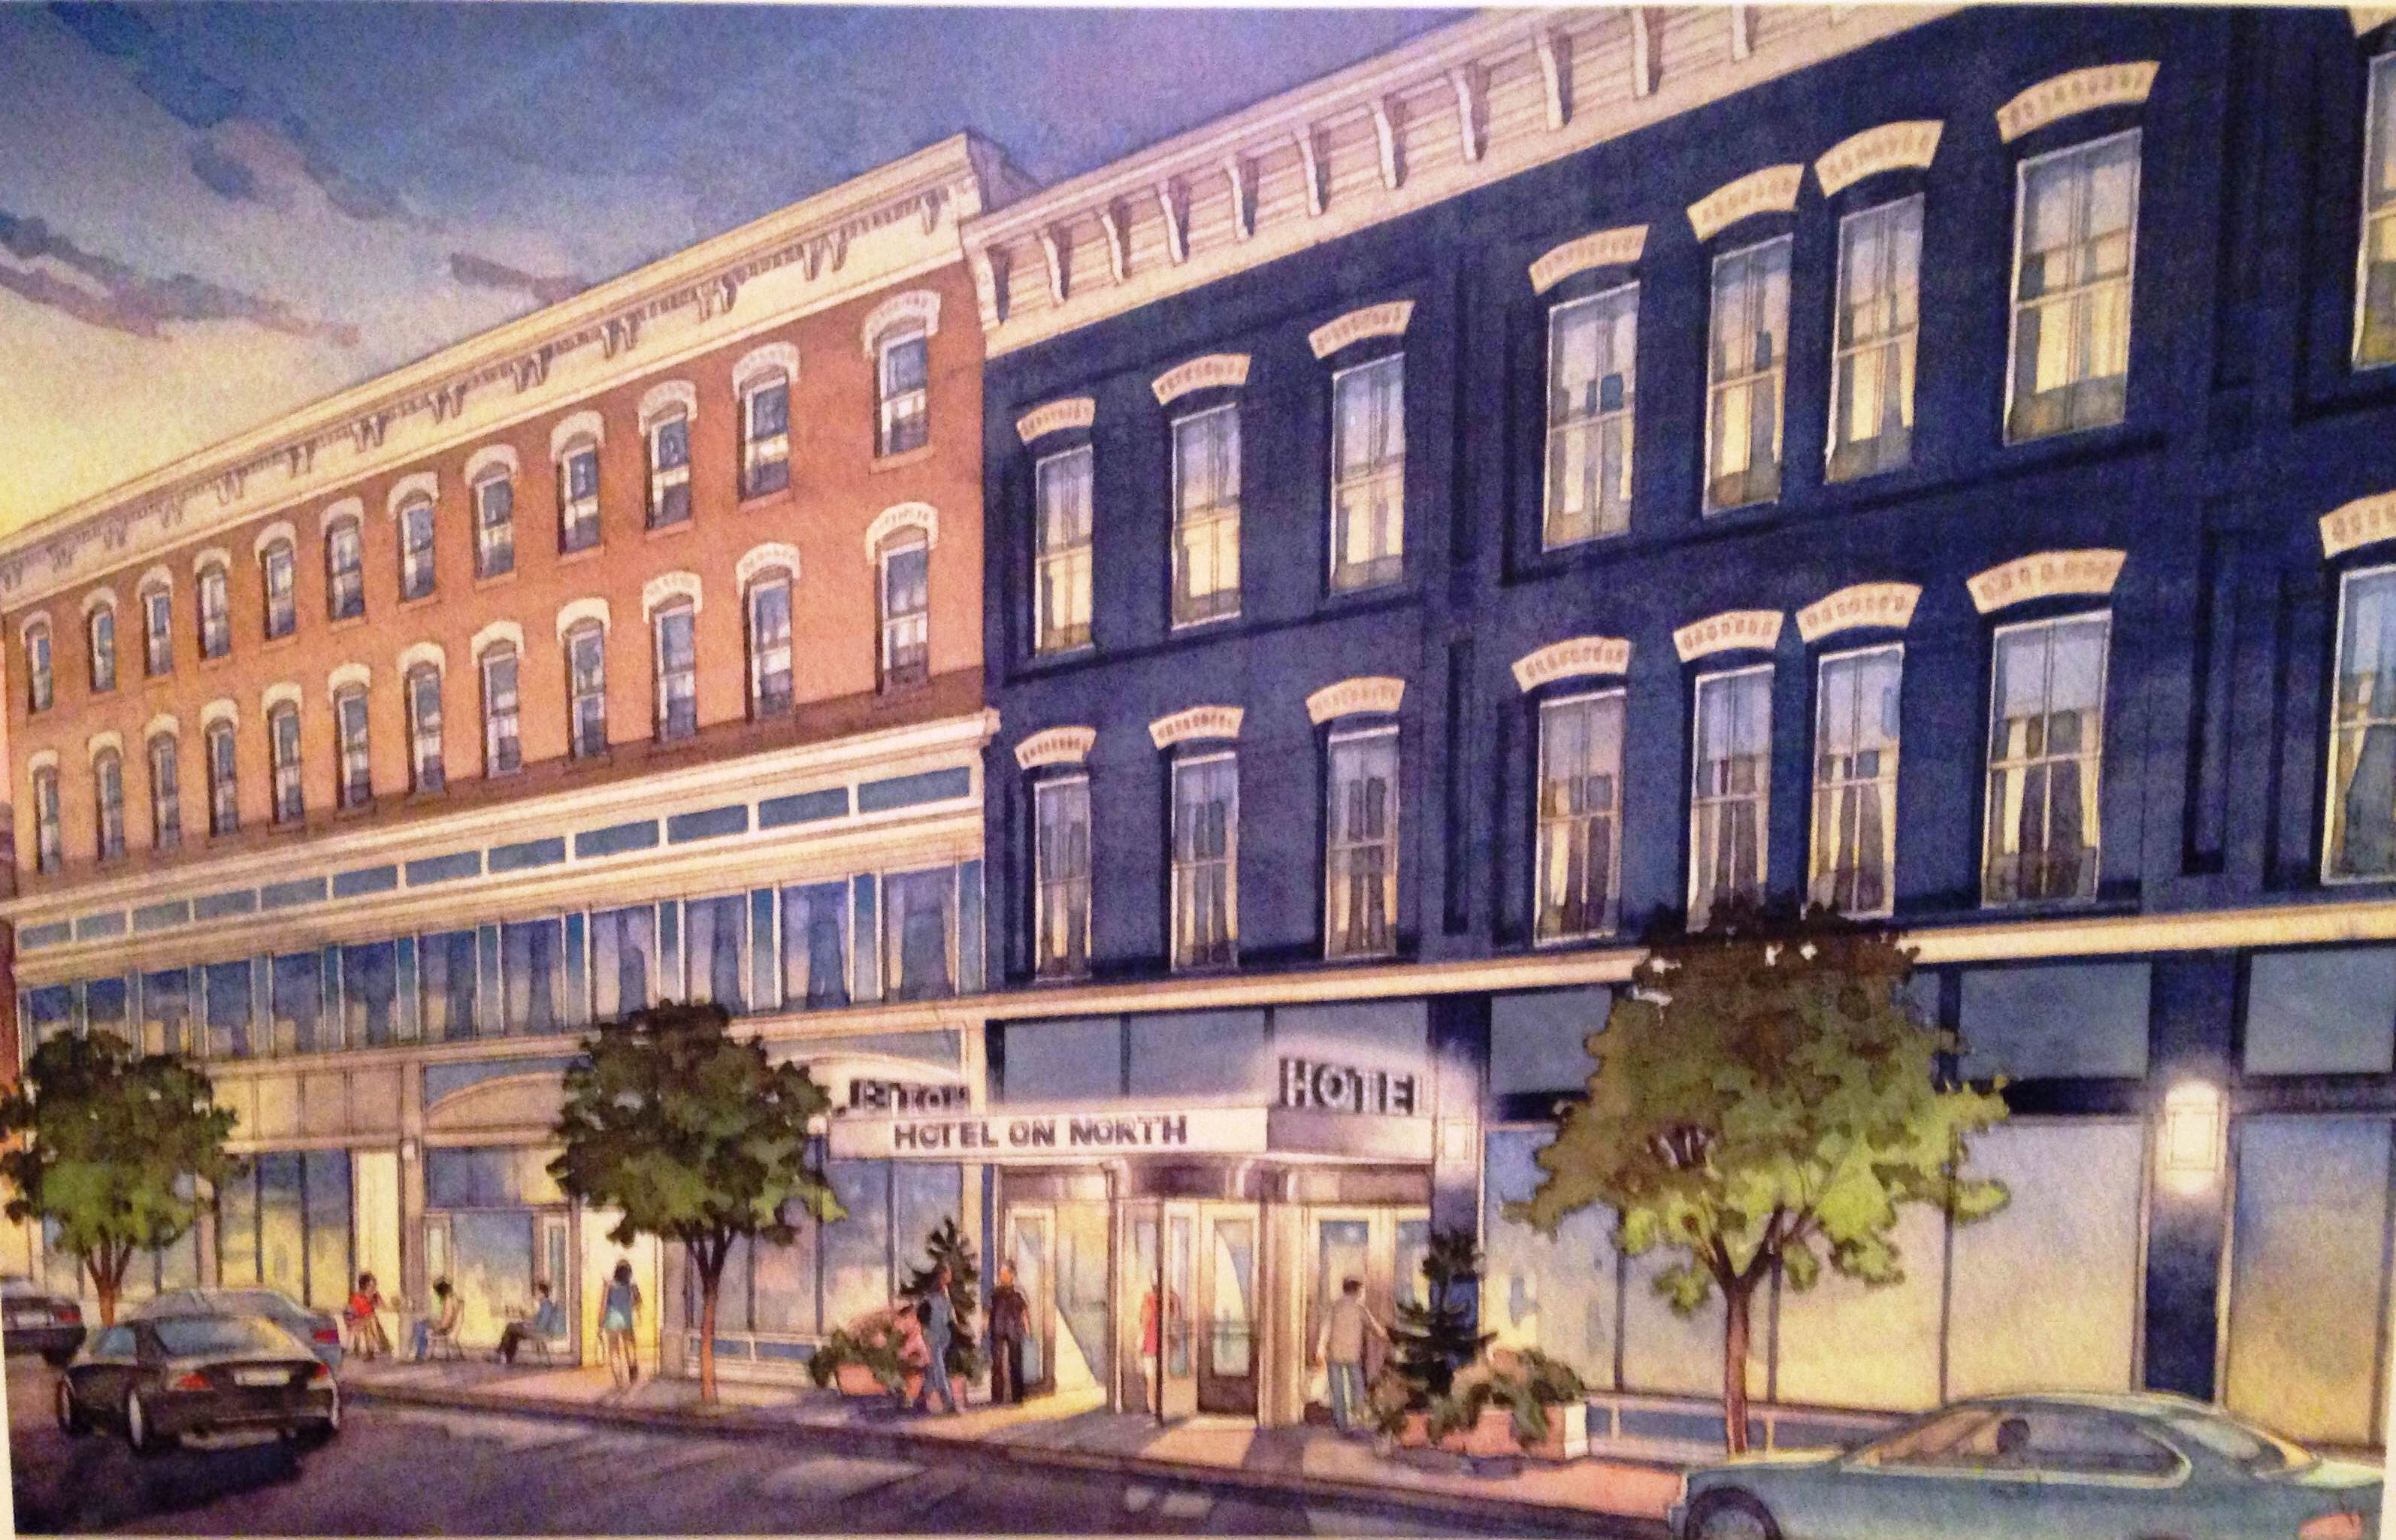 The proposed hotel on north is expected to open in spring 2015